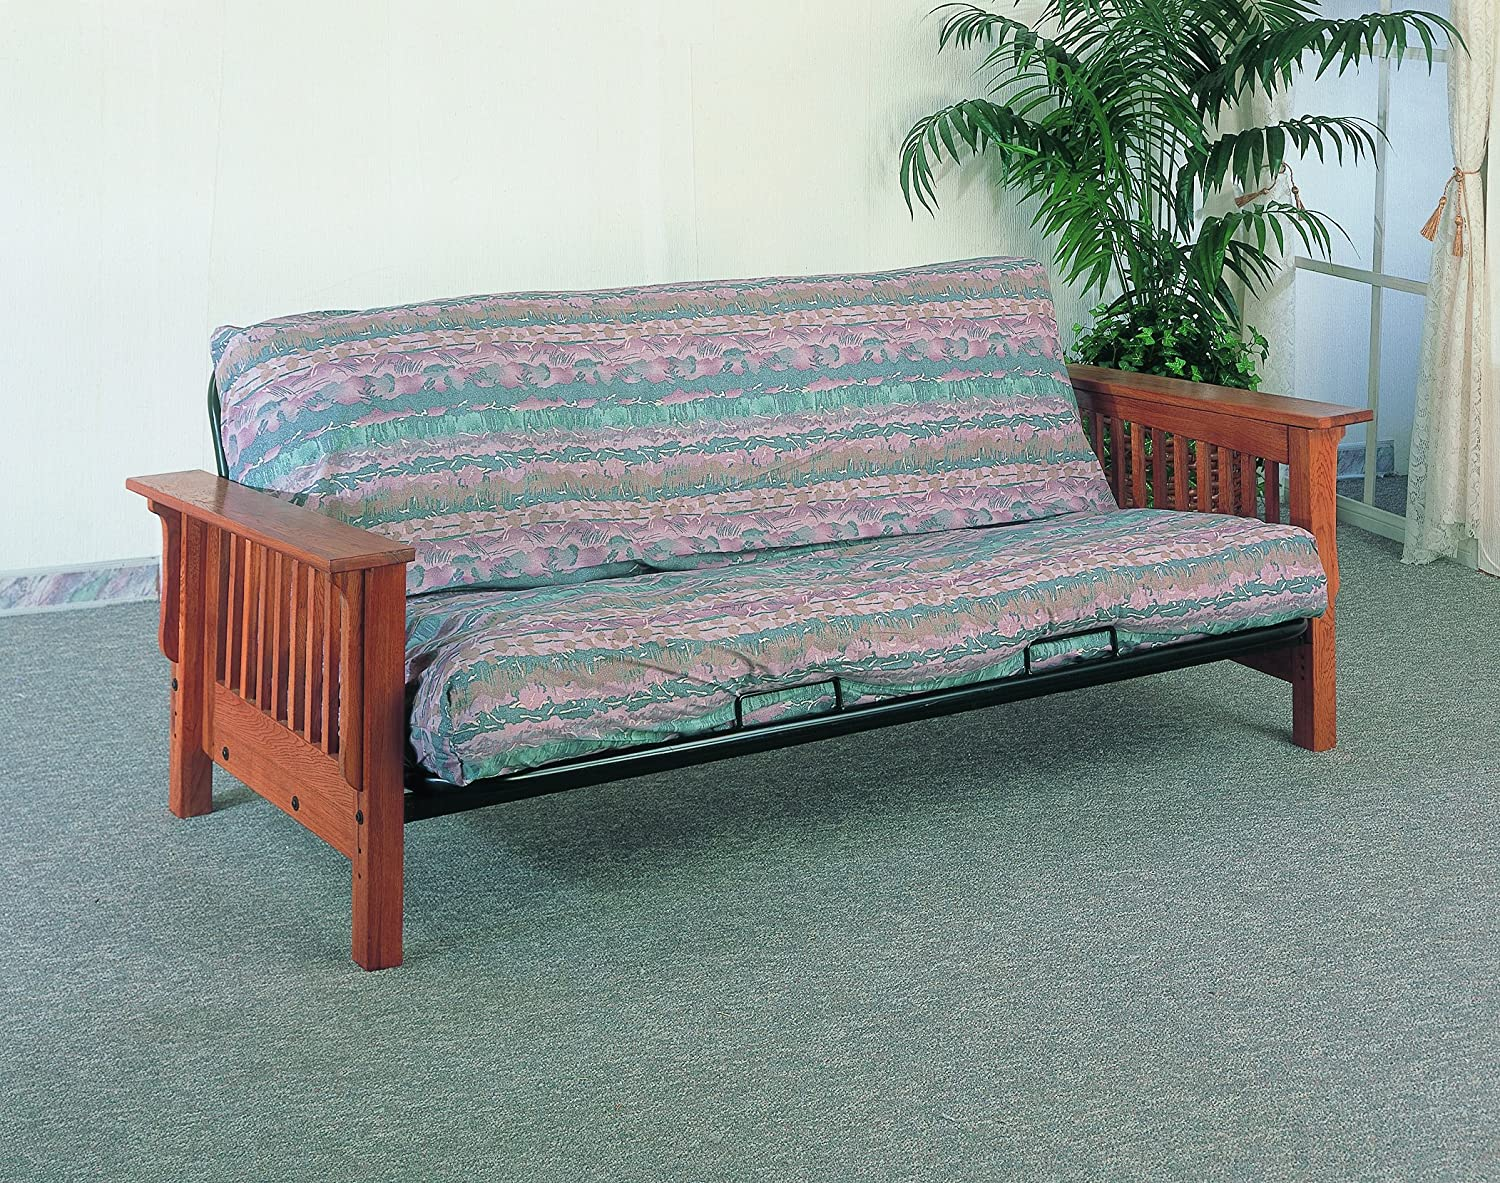 Medium image of crane mission style futon frame in solid oak